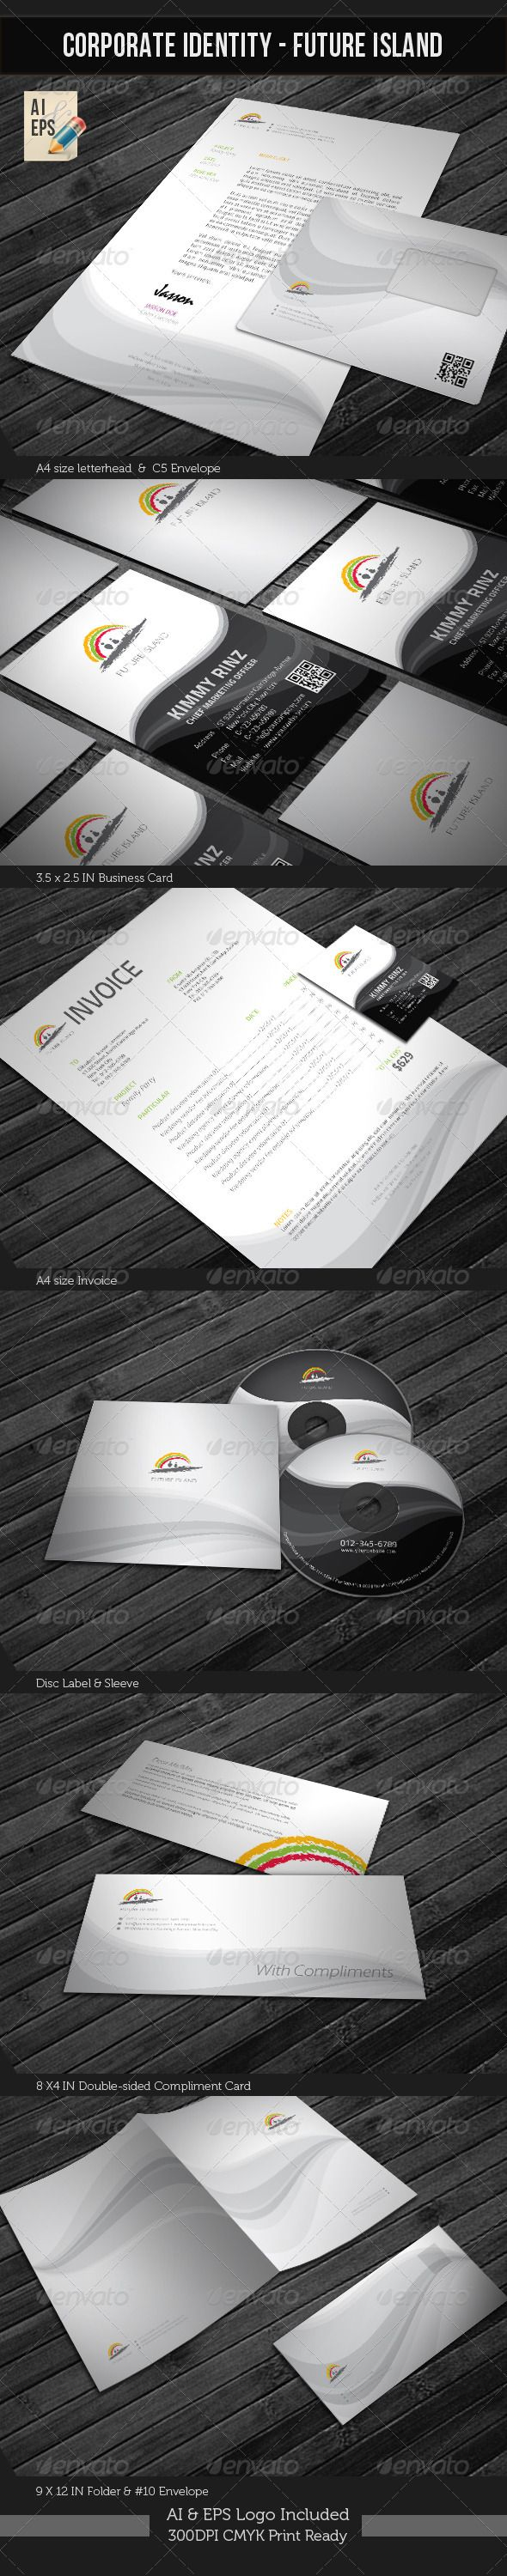 Corporate Identity Package - Future Island #GraphicRiver Corporate Identity Package – 'Future Island' contains: 1. Letterhead : A4 size 2. Invoice : A4 size 3. Business Card : 3.5X2.5 in 4. C5 Envelope 5. #10 Envelope 6. Disk Label 7. Disk Sleeve 8. Compliments: 8X4 in 9. Presentation Folder: 9×12in [ Featured Items] [Wedding Invitation/ Greeting Card] ; Wedding Invitation Package Corporate/Anniversary Invitation Template Baby Shower/Announcement CARD Template Night Club Flyer Corporate…